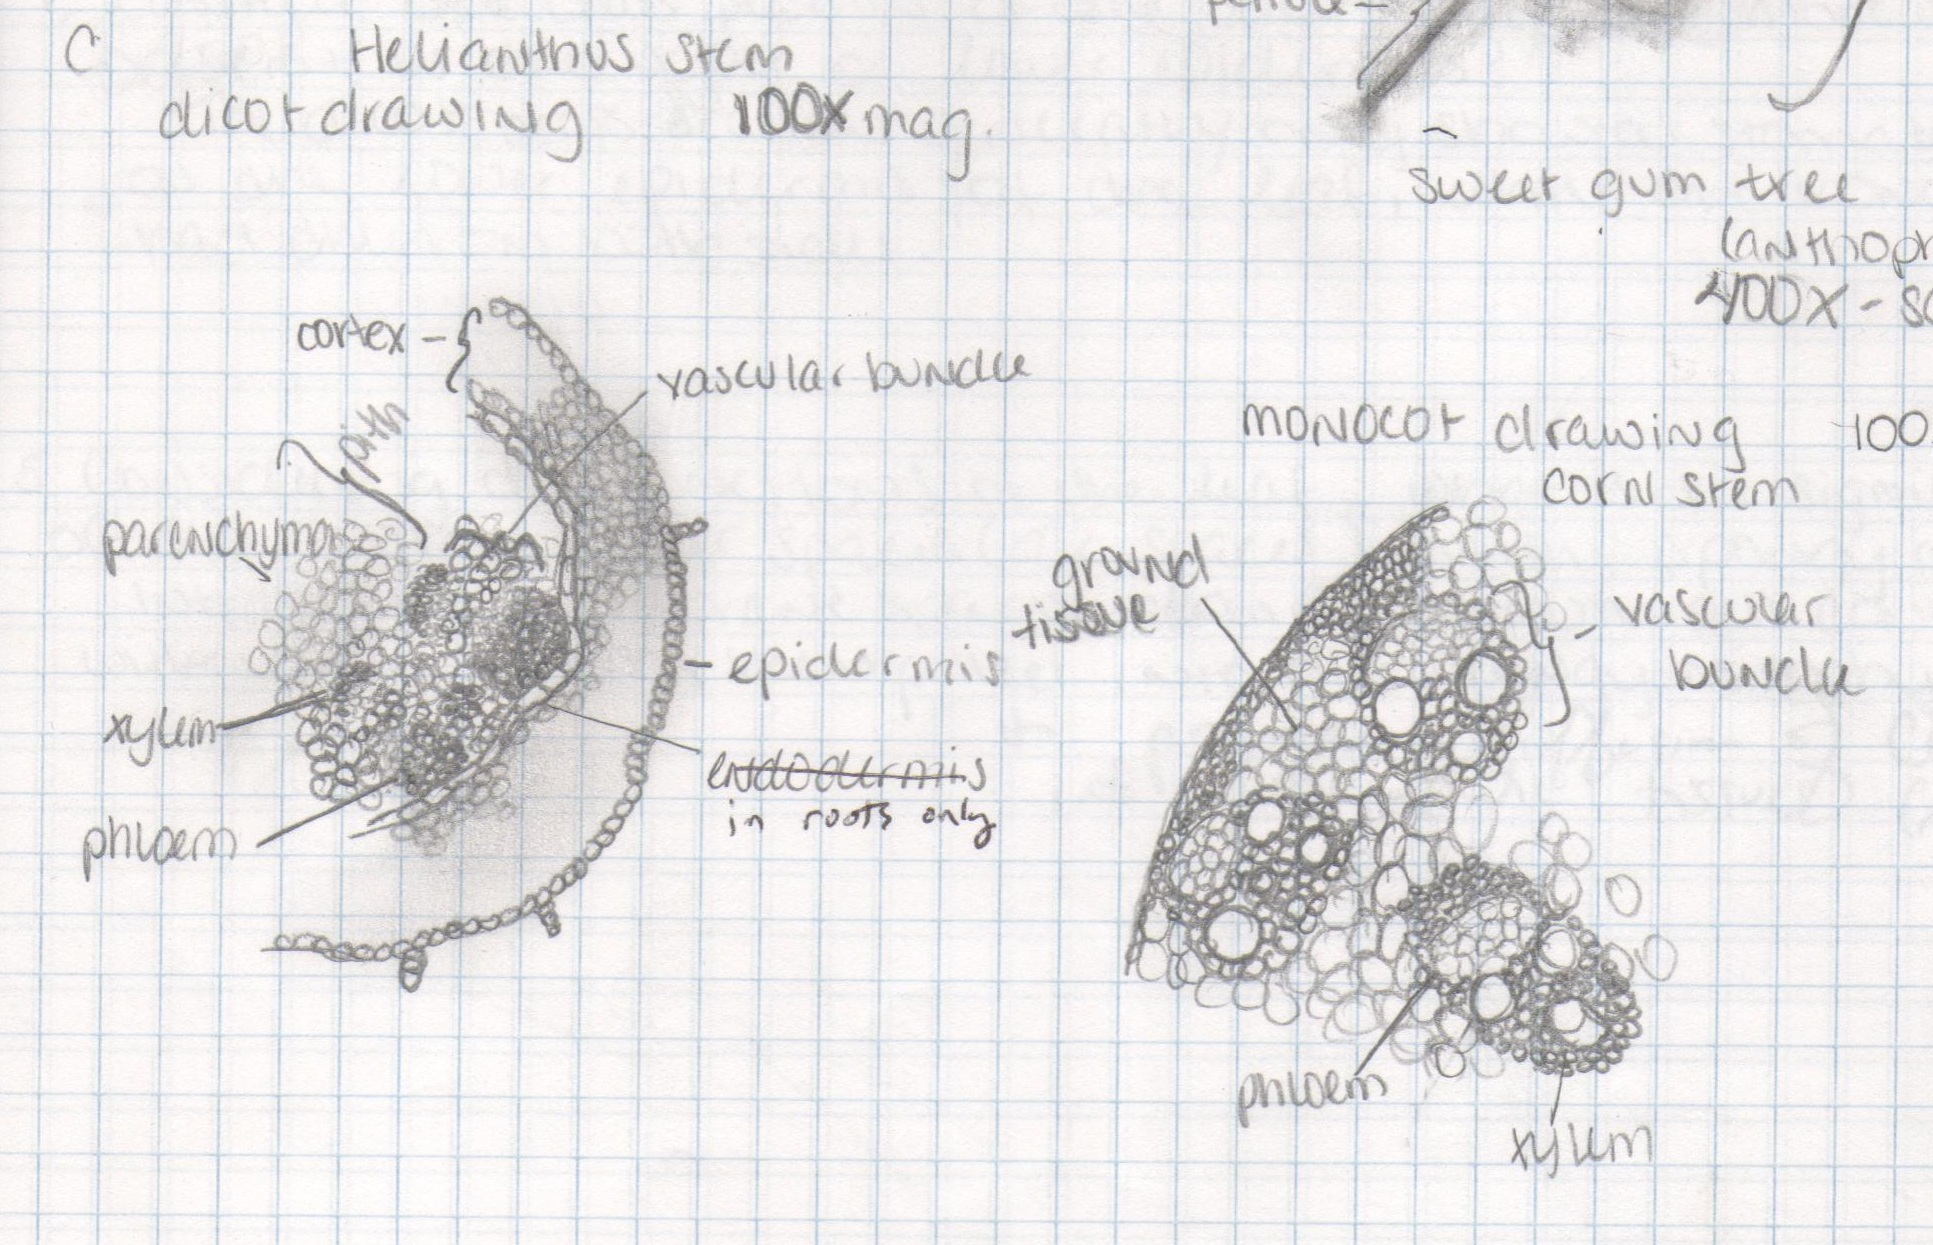 Flower Monocot Dicot Diagram